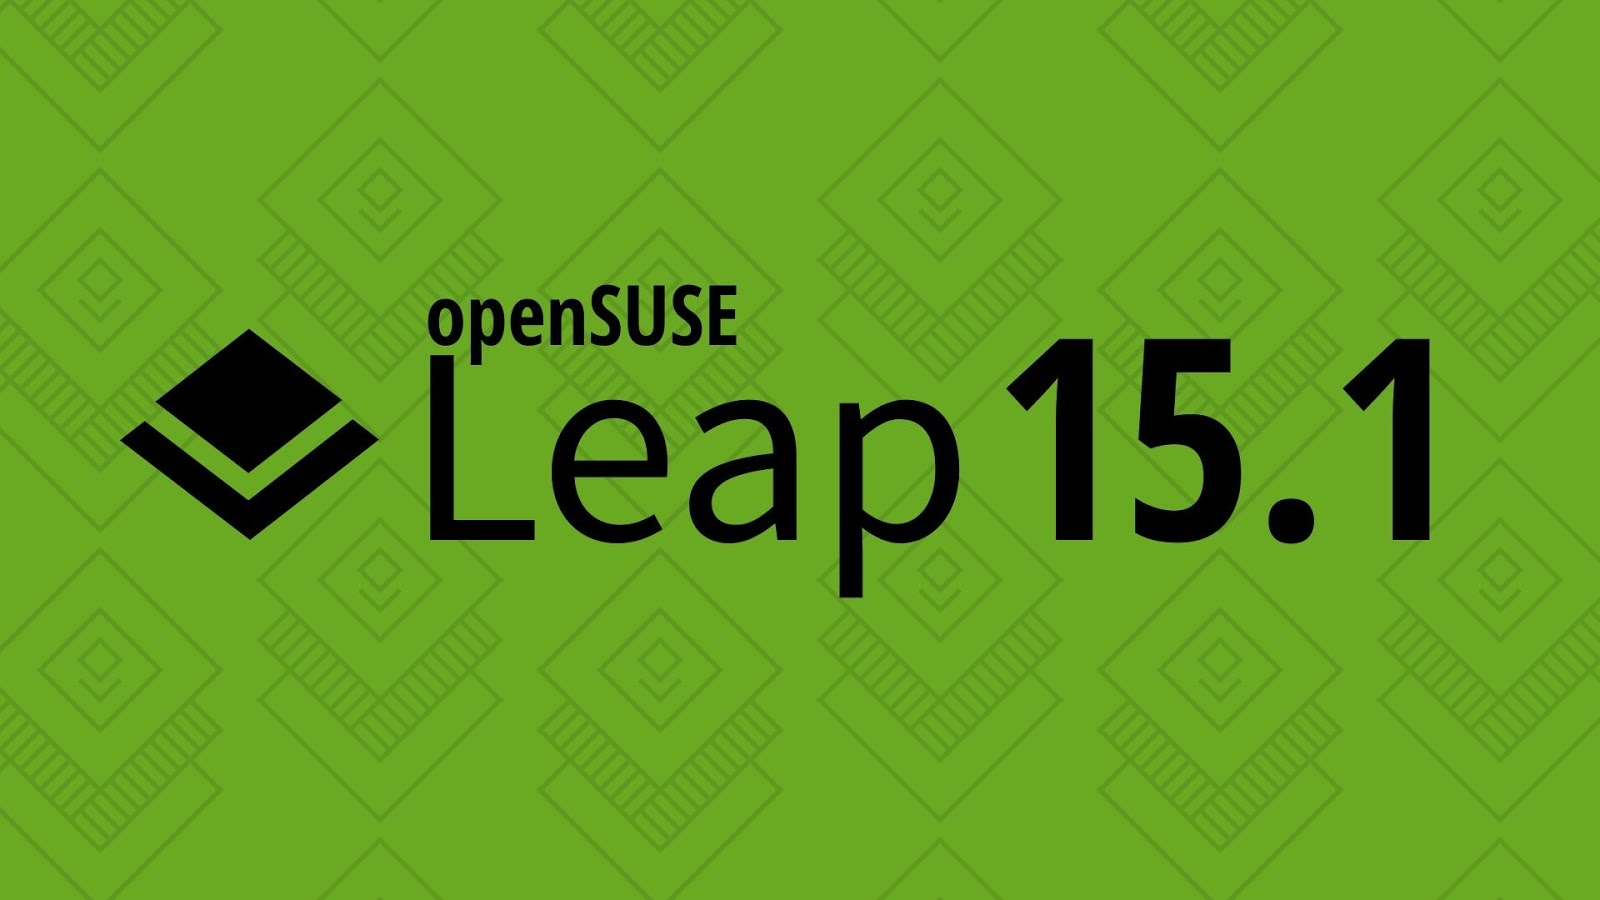 openSUSE-Leap-15-1 WSL is now released for Microsoft users on store